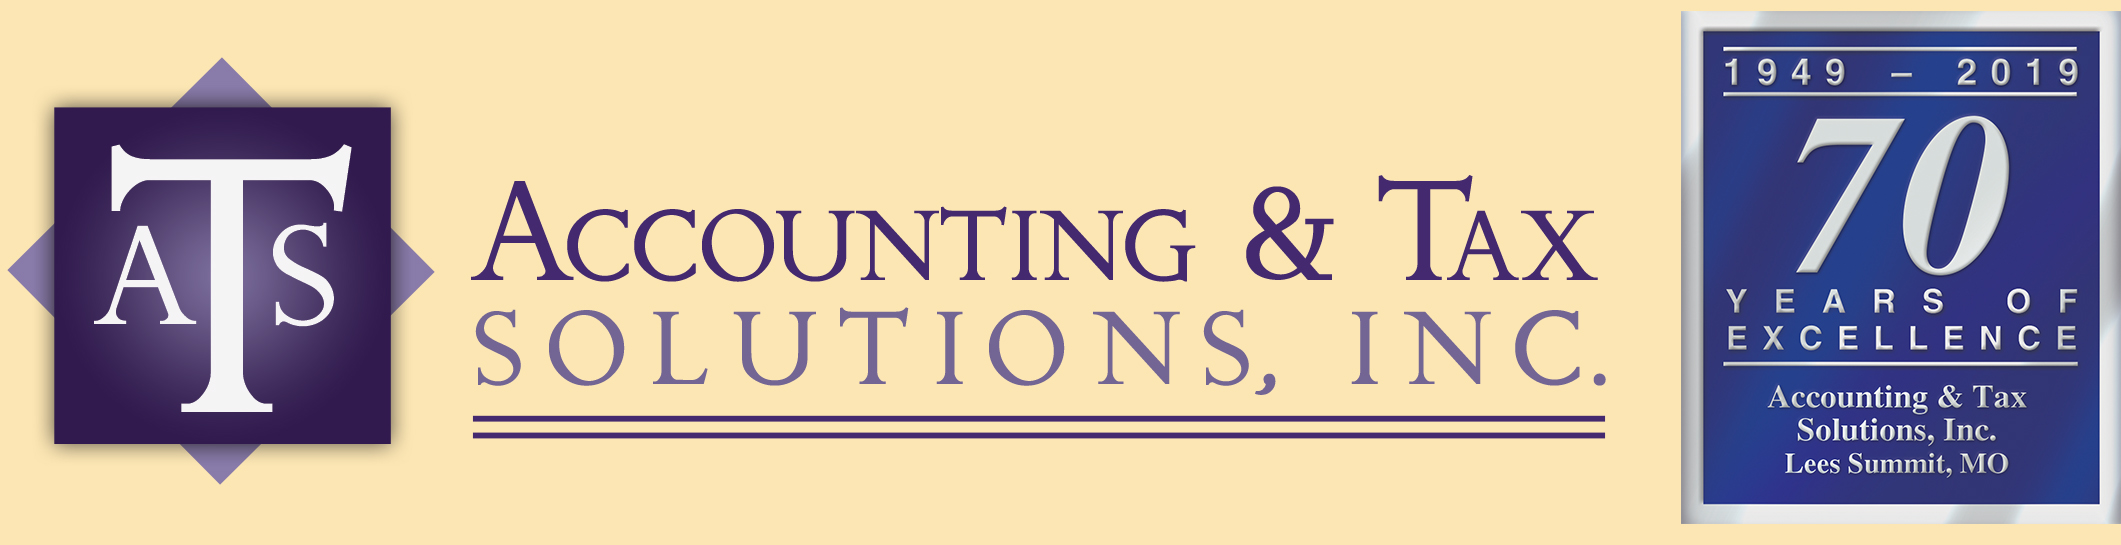 Accounting and Tax Services in Lee's Summit, Missouri